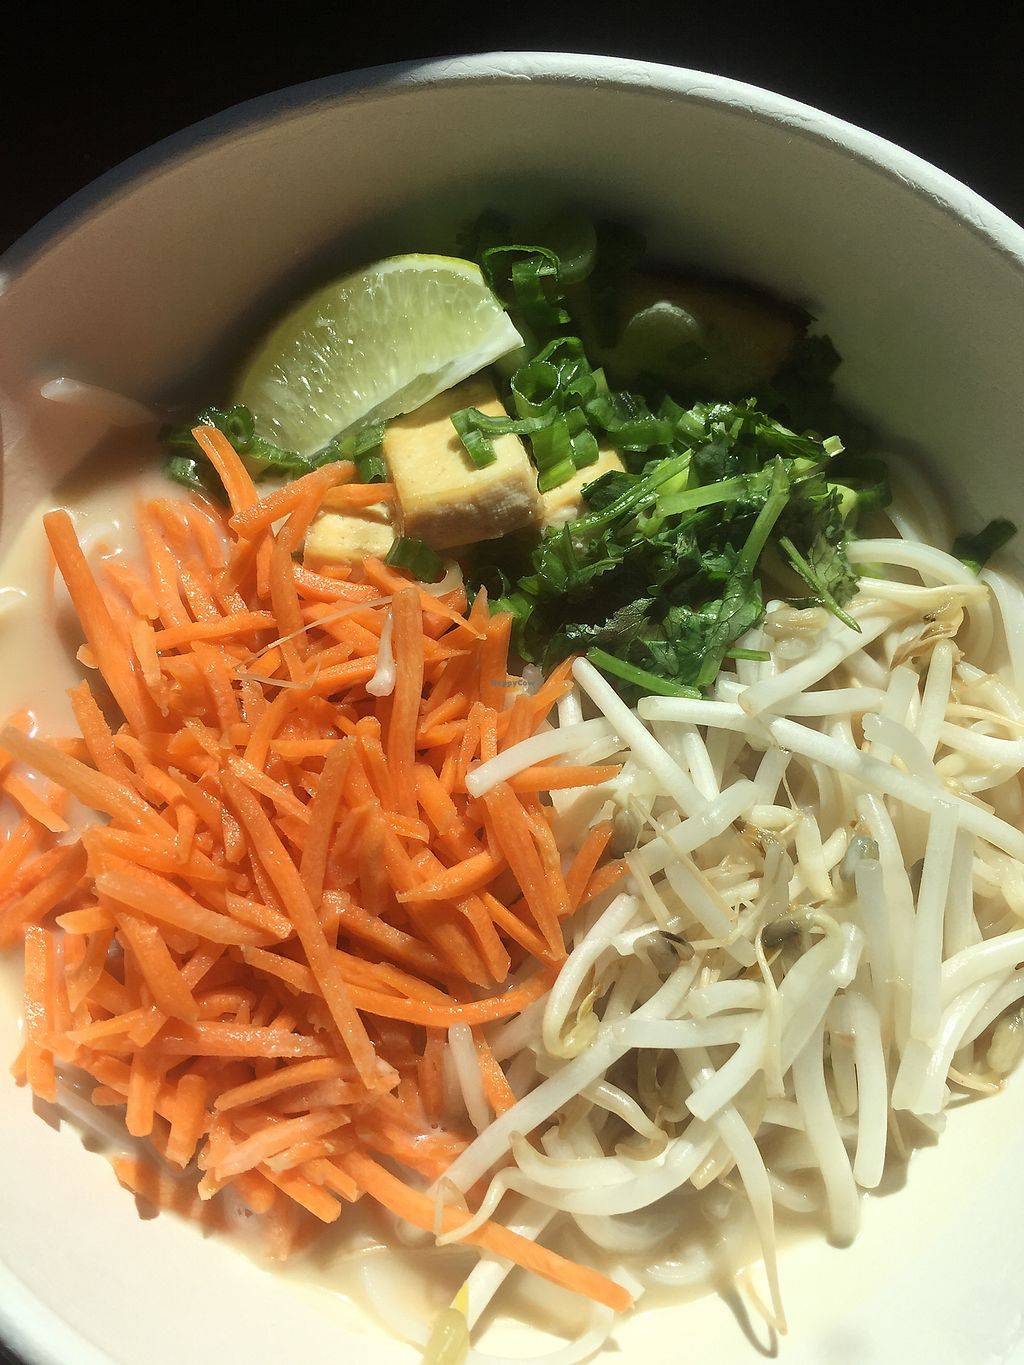 """Photo of Noodle Nirvana  by <a href=""""/members/profile/DeltaDiva5"""">DeltaDiva5</a> <br/>Sesame tofu with rice noodles and spicy lime veggie broth  <br/> September 29, 2017  - <a href='/contact/abuse/image/76449/309851'>Report</a>"""